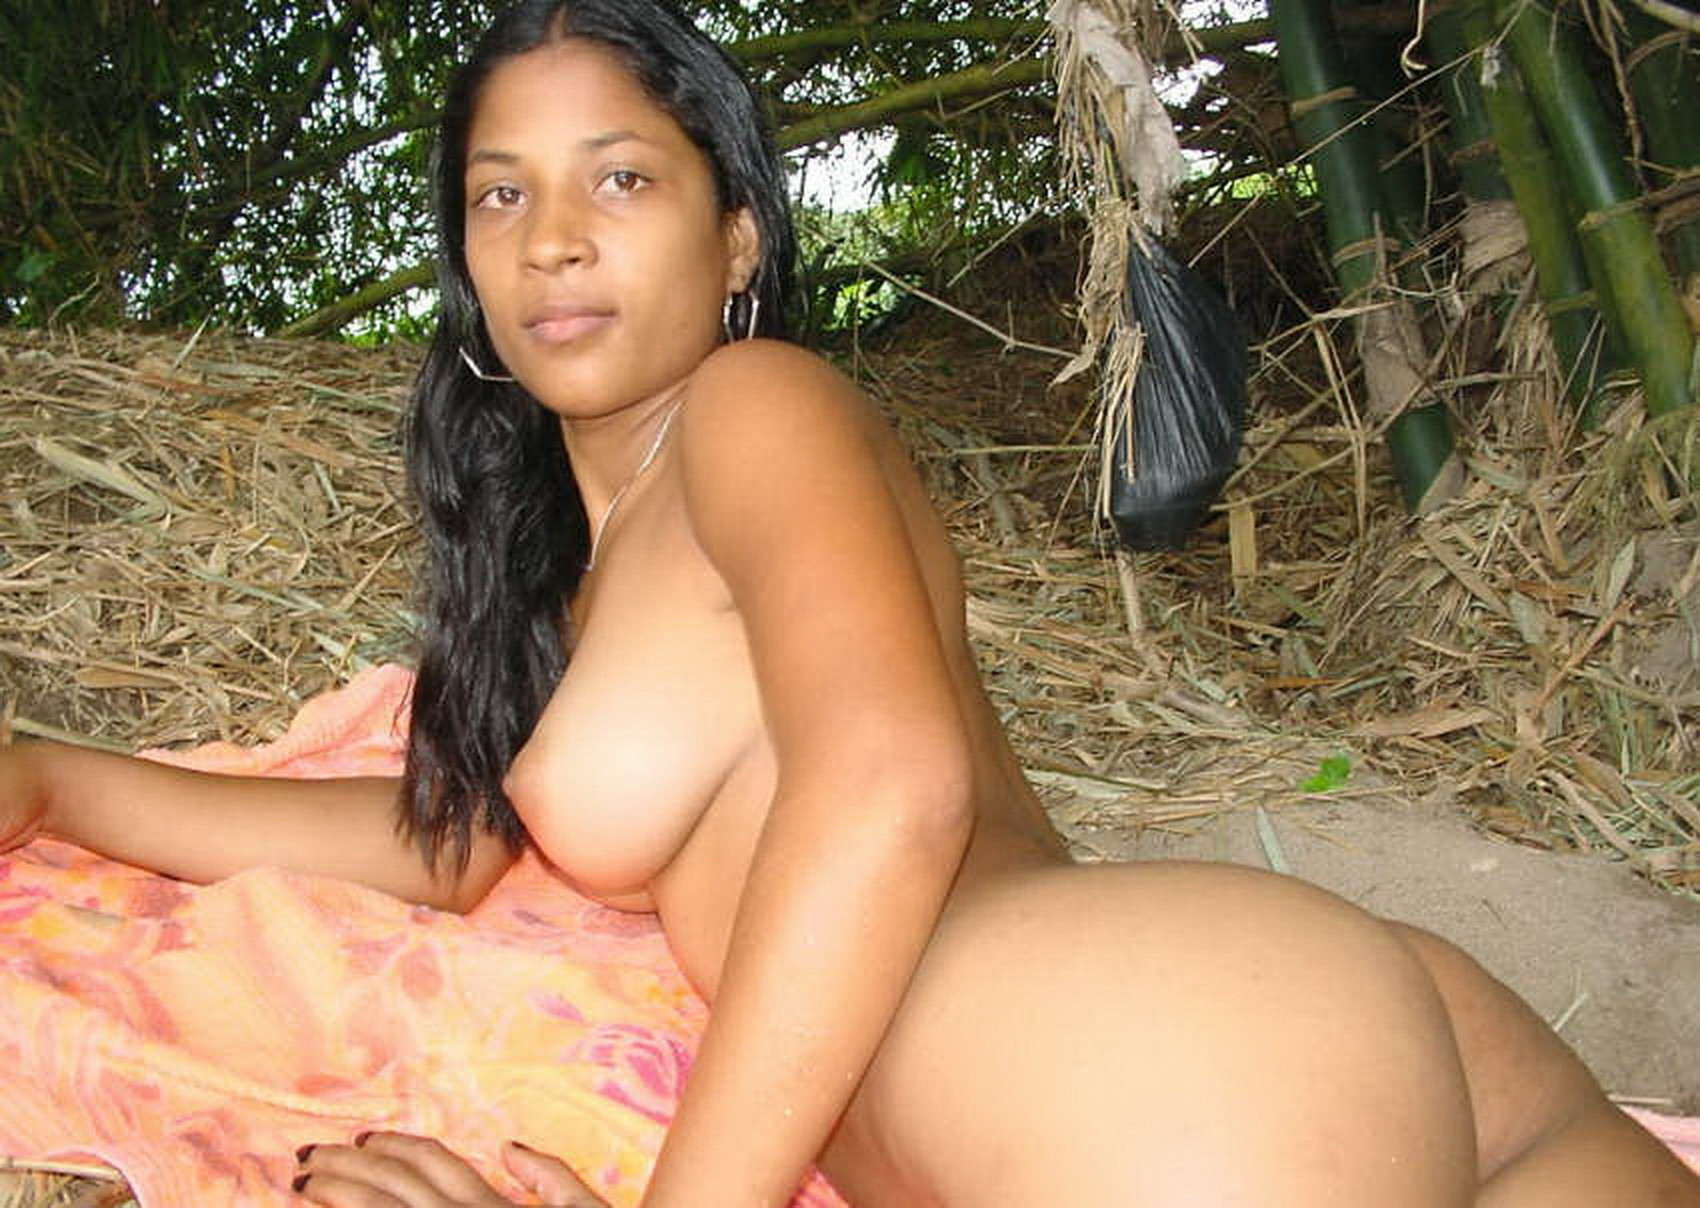 Teen pussy model sri lanka, asian cock cum